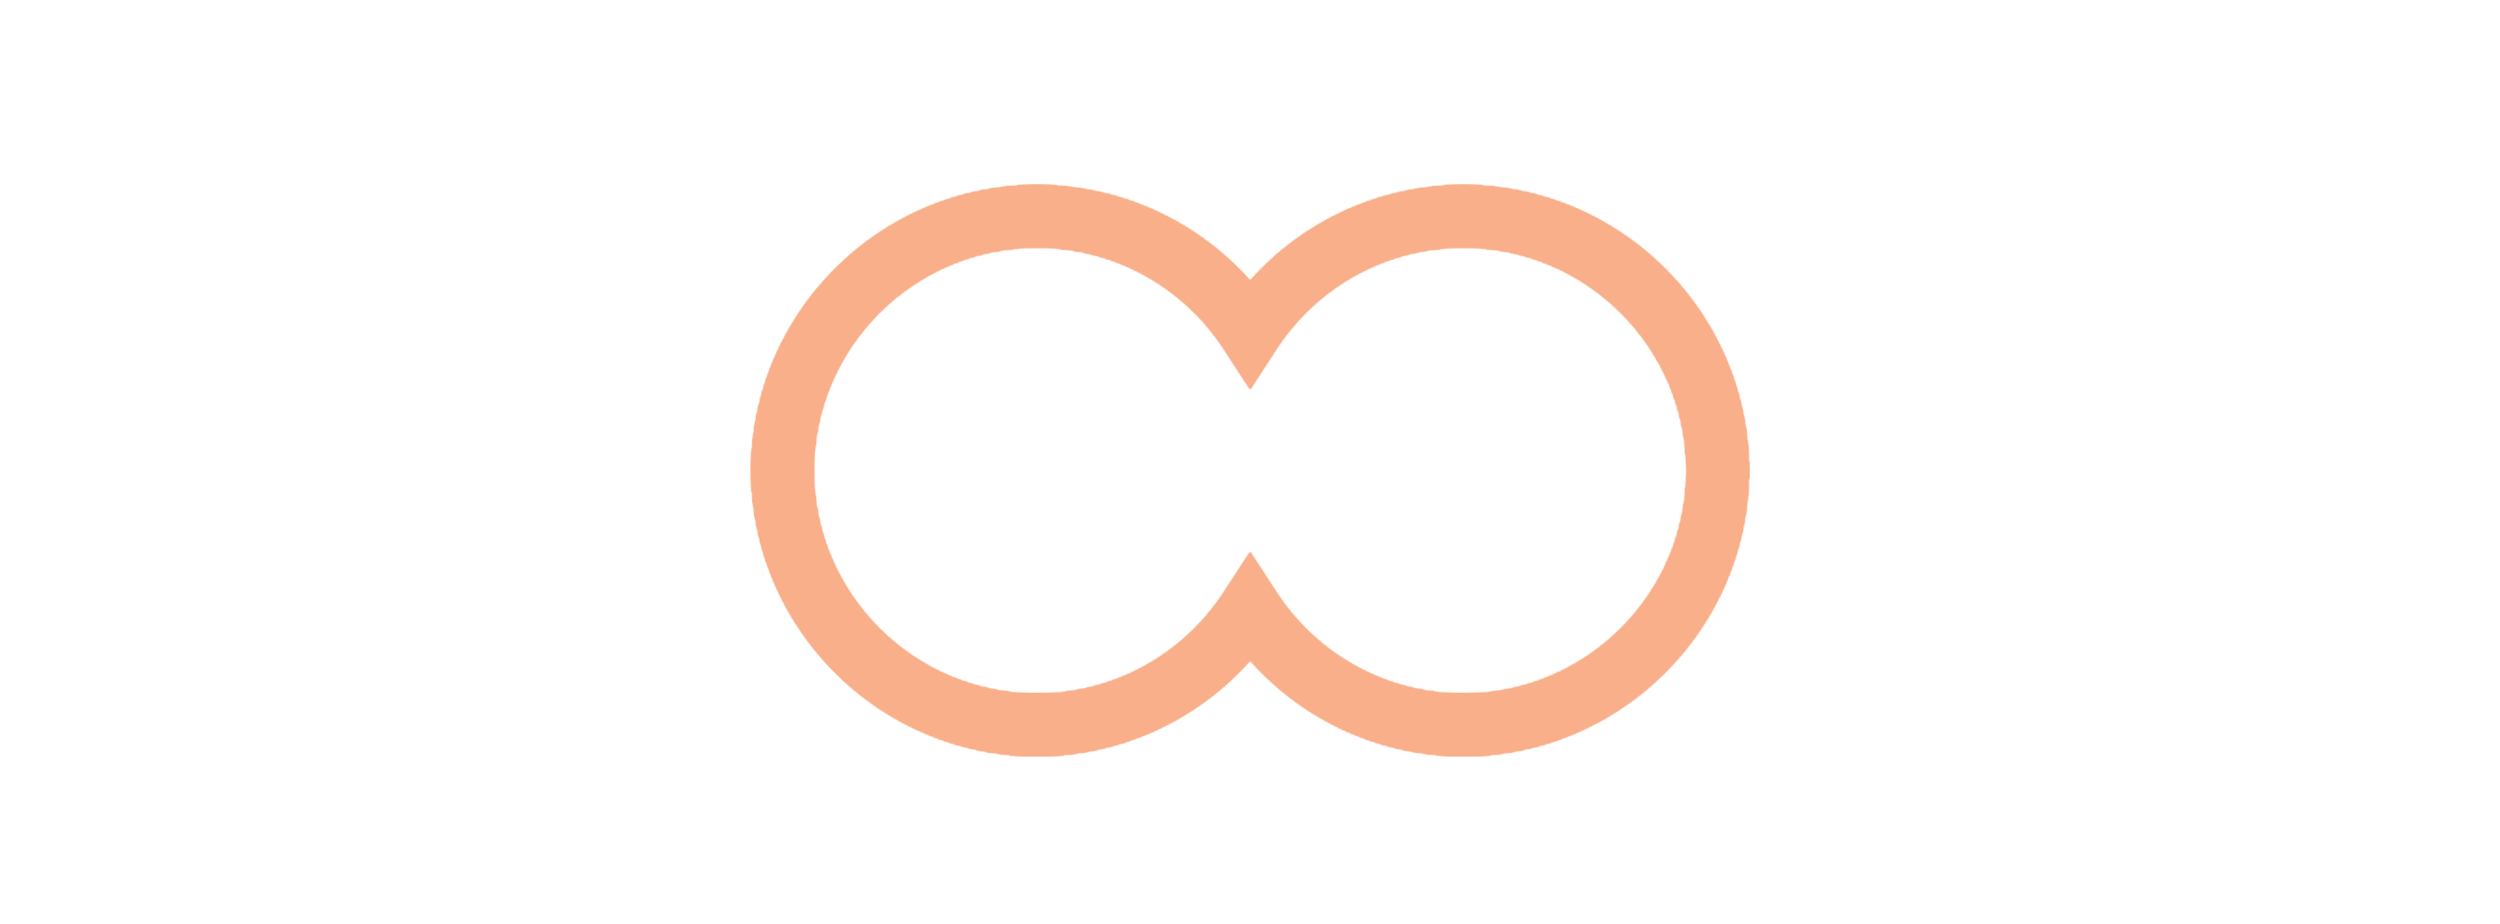 OO logo_icon_colour.png